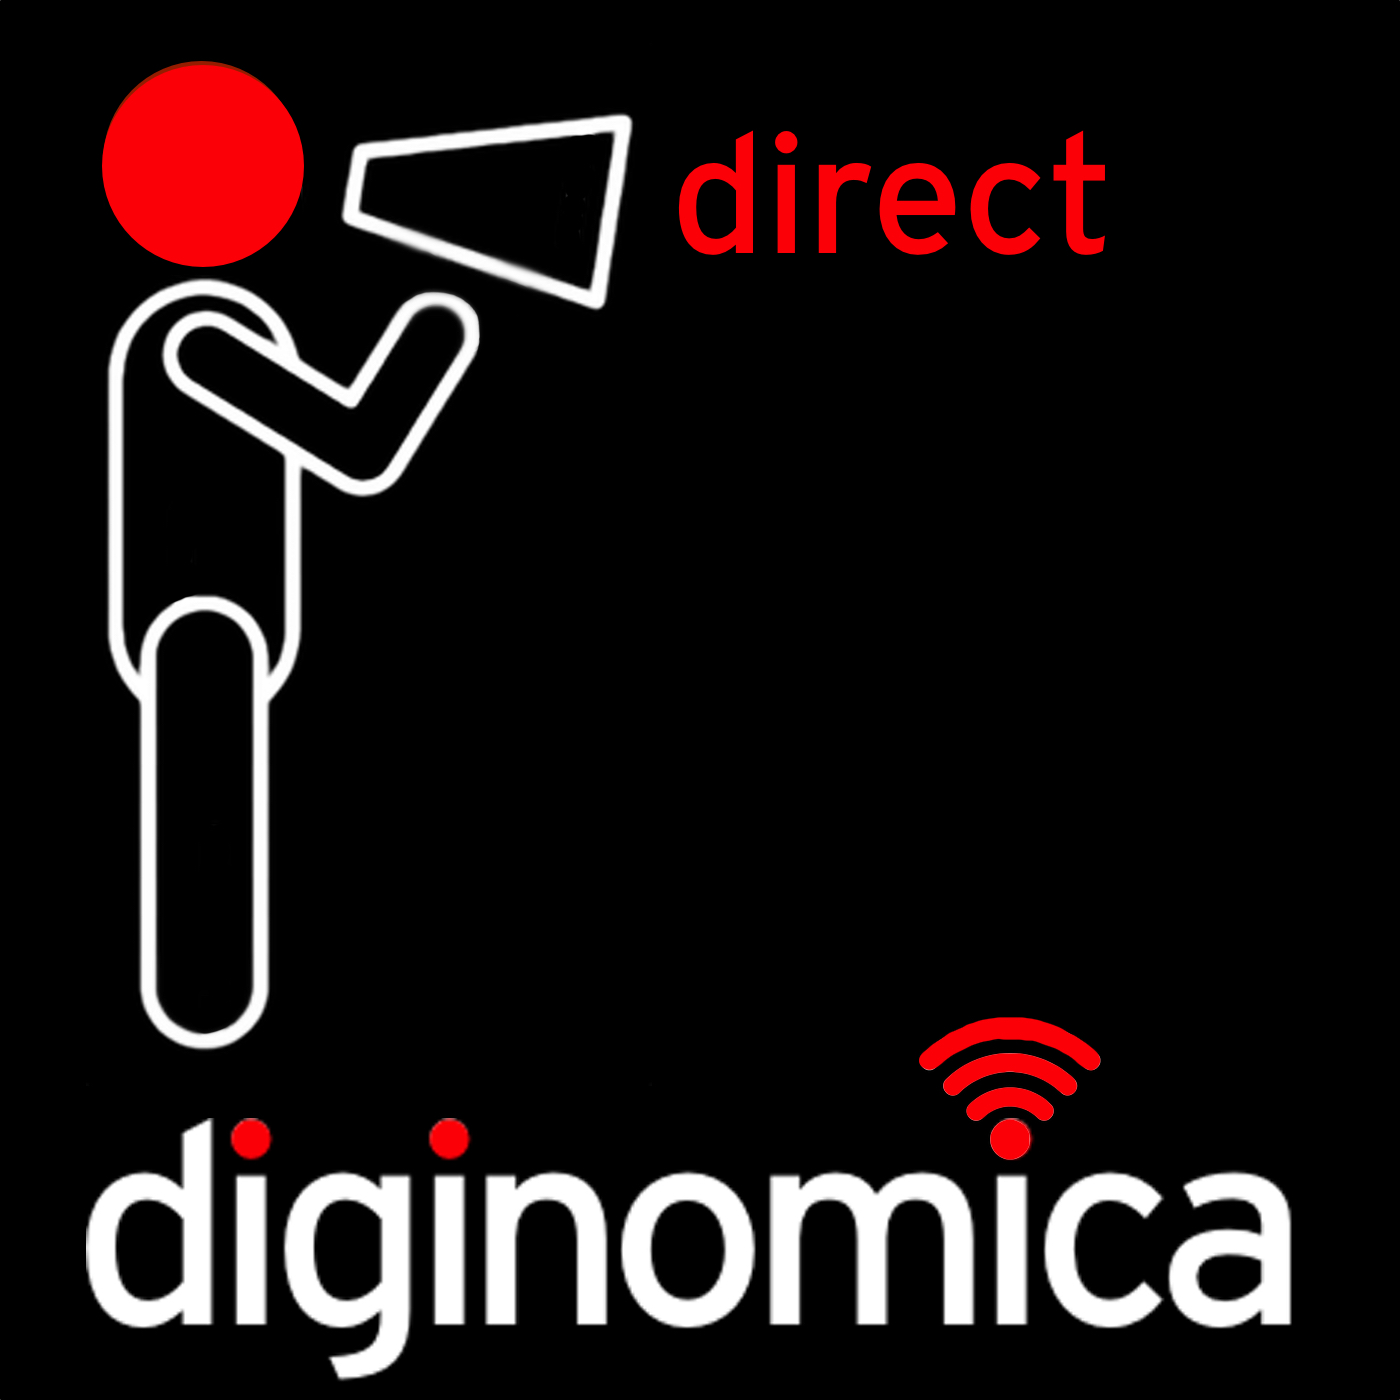 Diginomica Episode #58 - Phil Wainewright in conversation with Tom Keiser, COO Zendesk